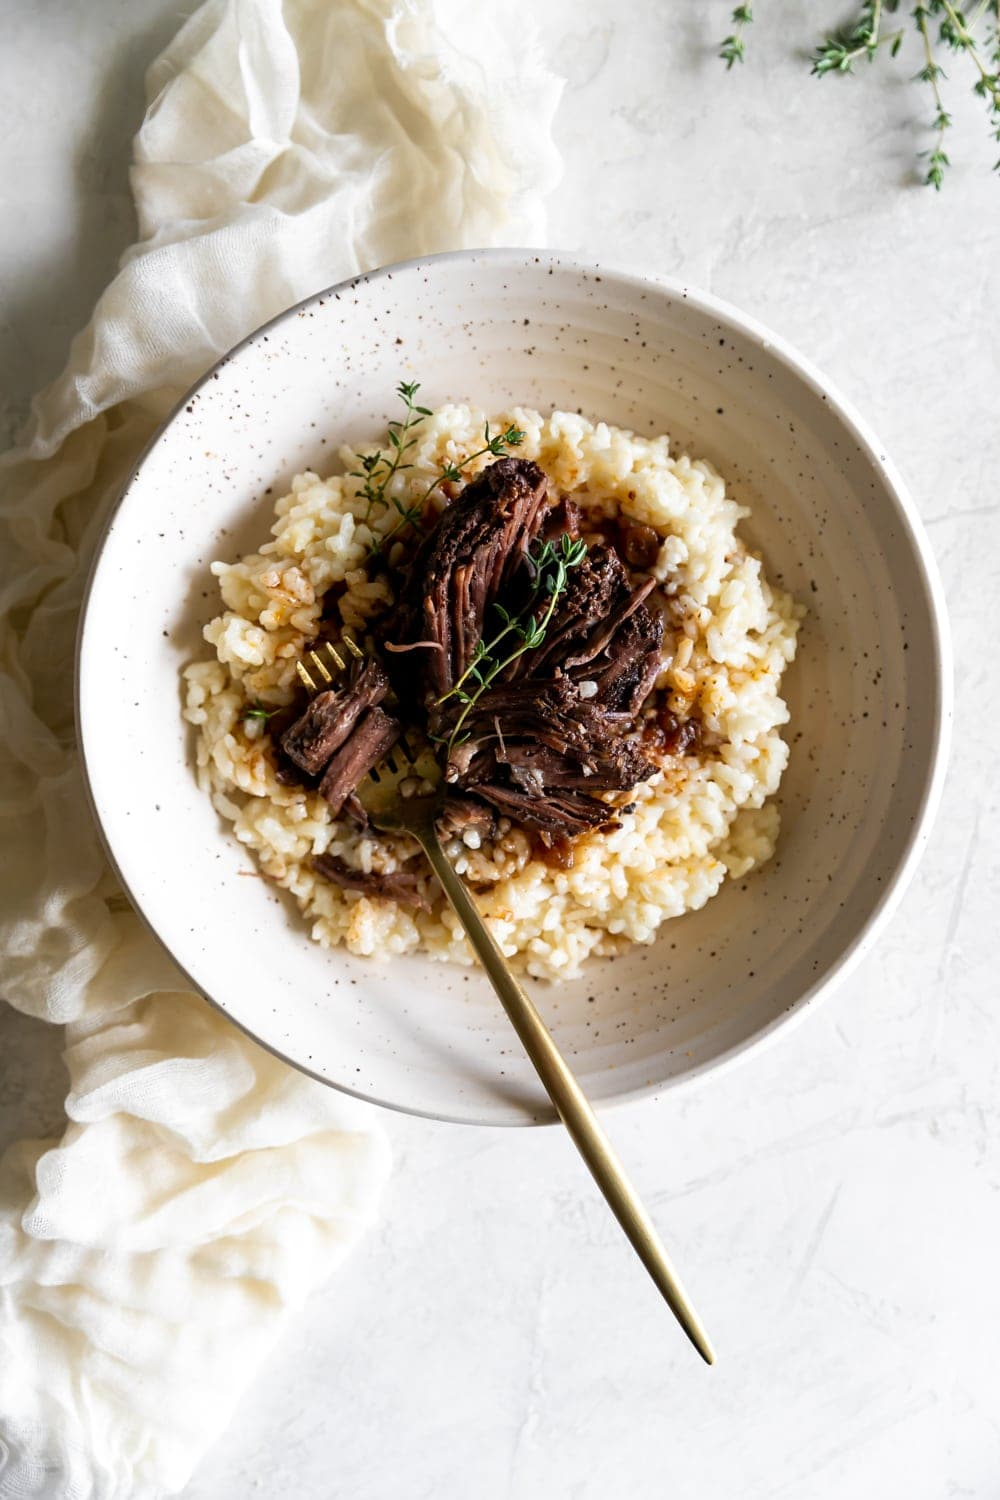 red wine braised short ribs on top of risotto with a gold folk in a ceramic bowl